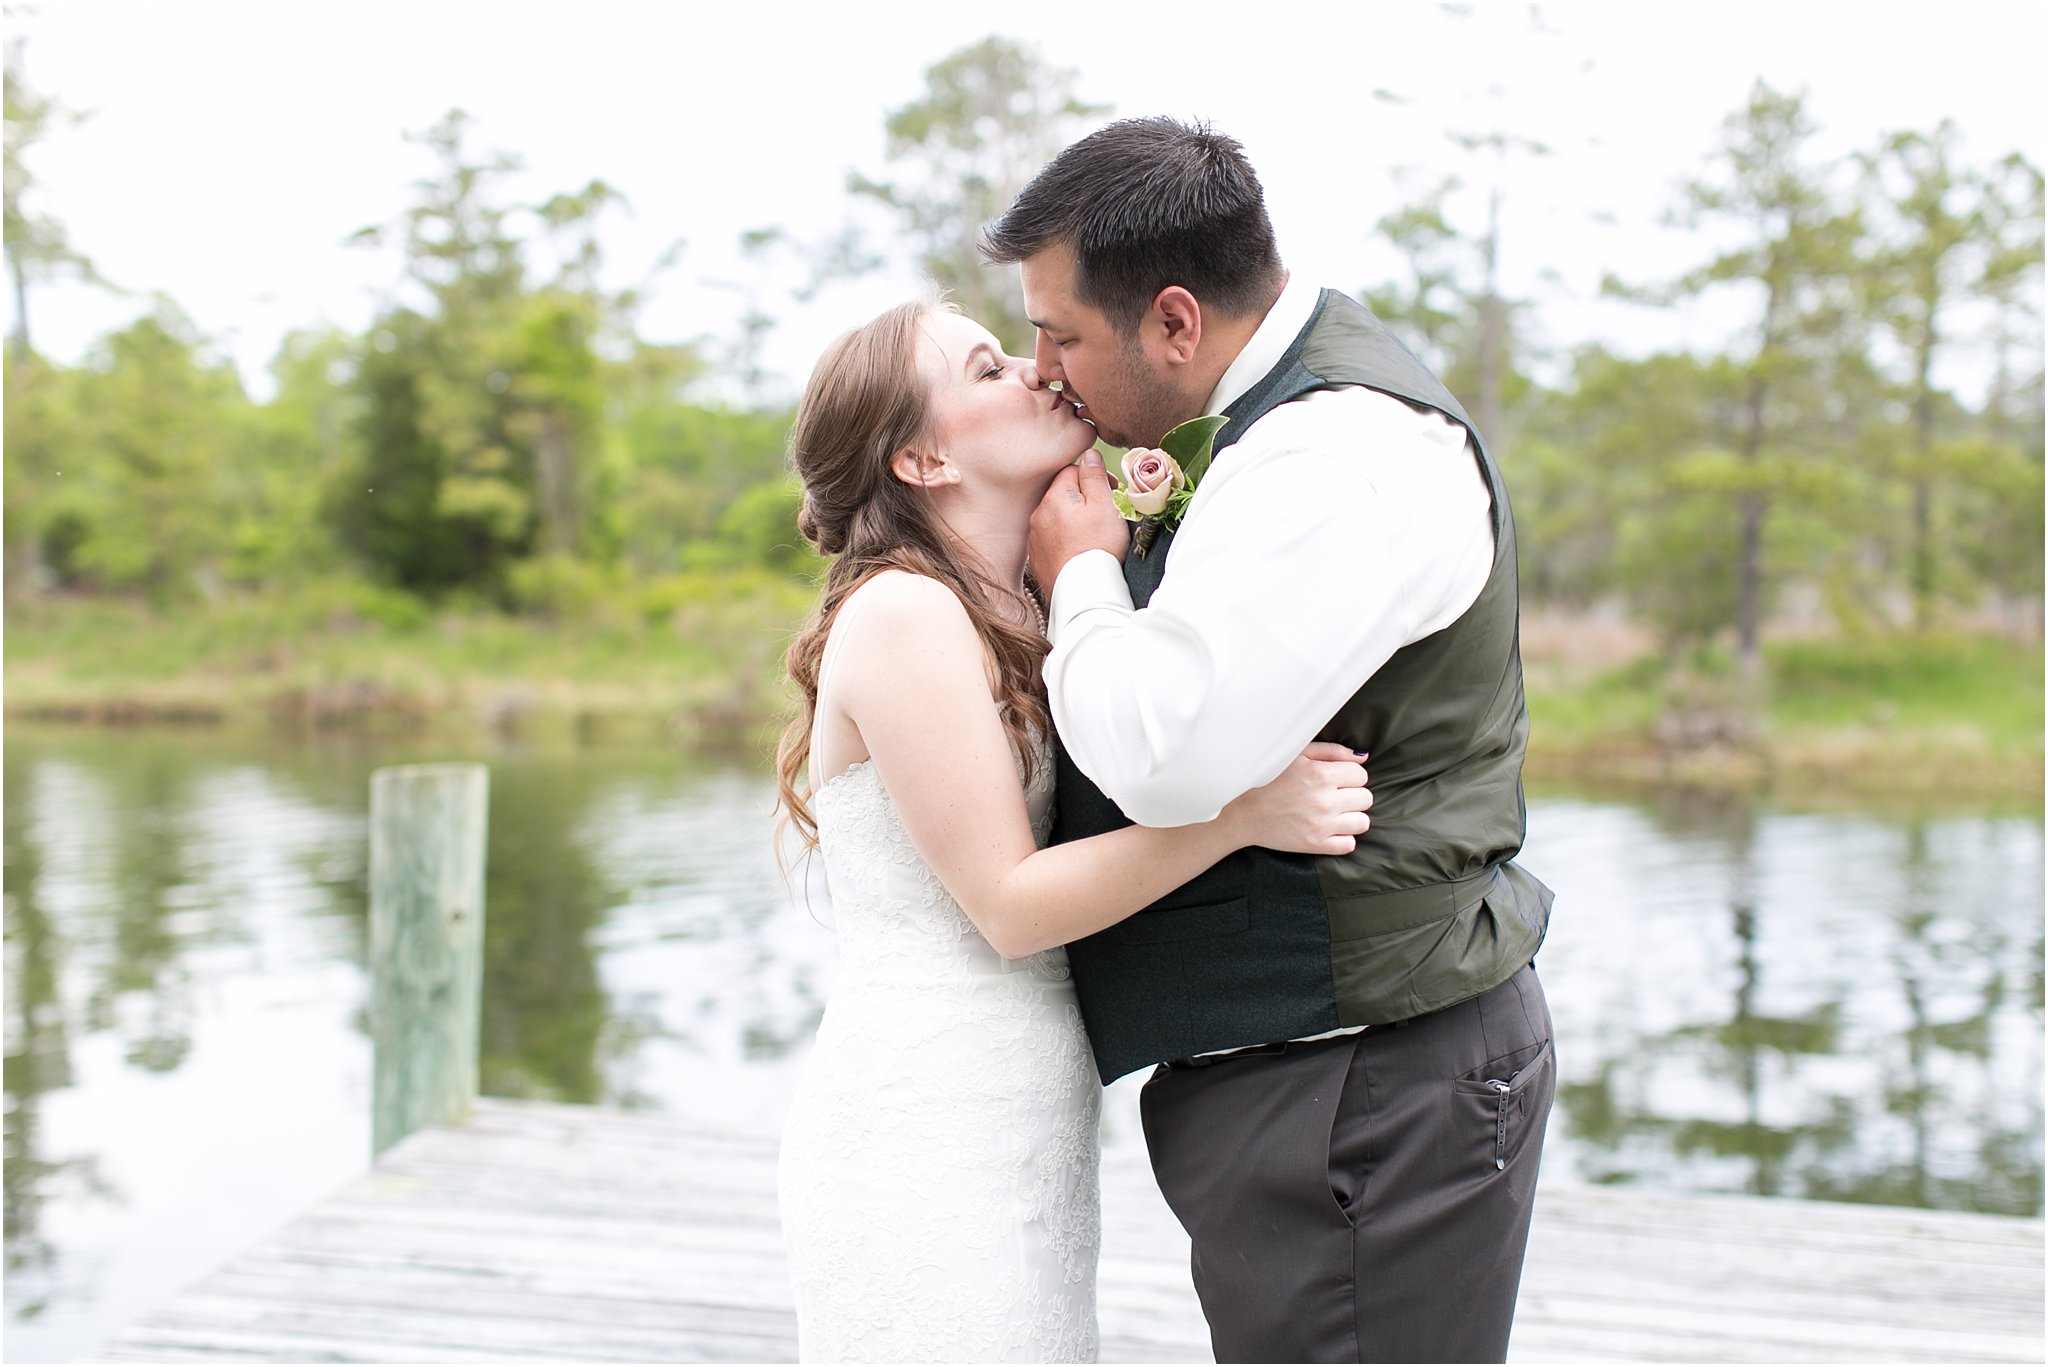 jessica_ryan_photography_virginia_virginiabeachwedding_bayislandvirginiabeach_backyardwedding_waterfrontwedding_intimatewedding_vintagewedding_1570